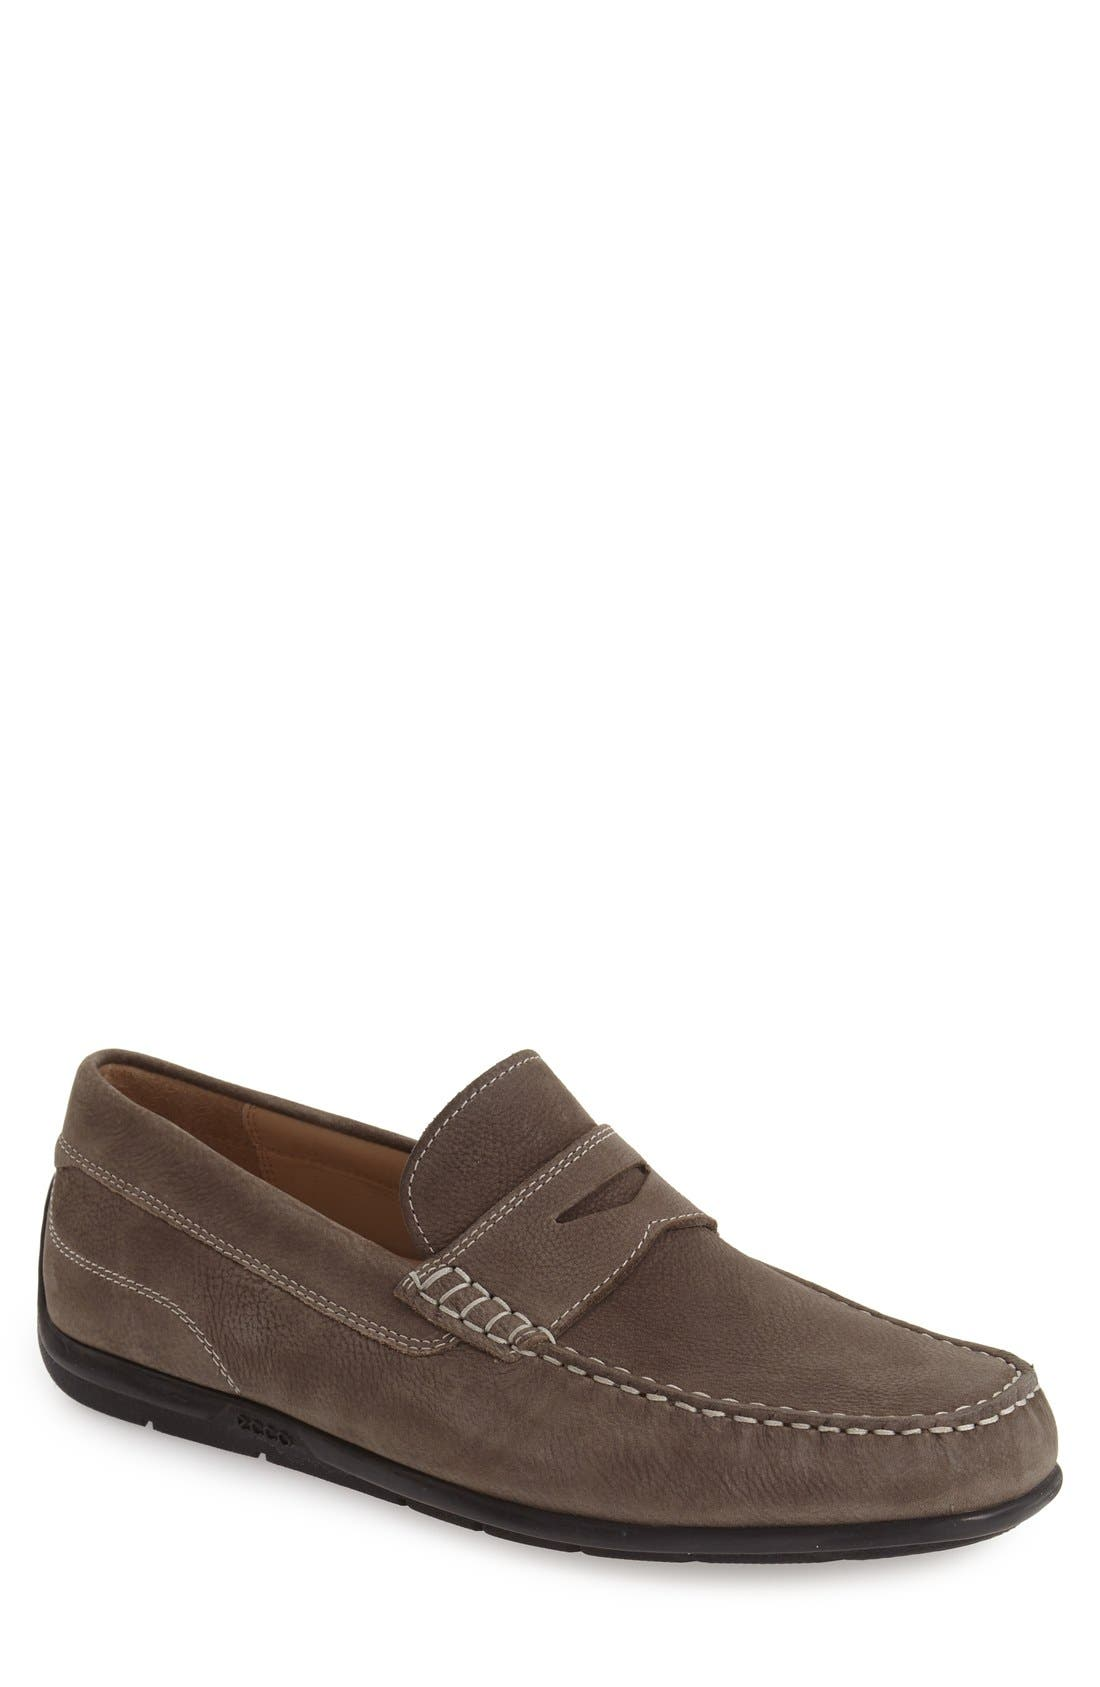 'Classic Moc 2.0' Penny Loafer,                         Main,                         color,